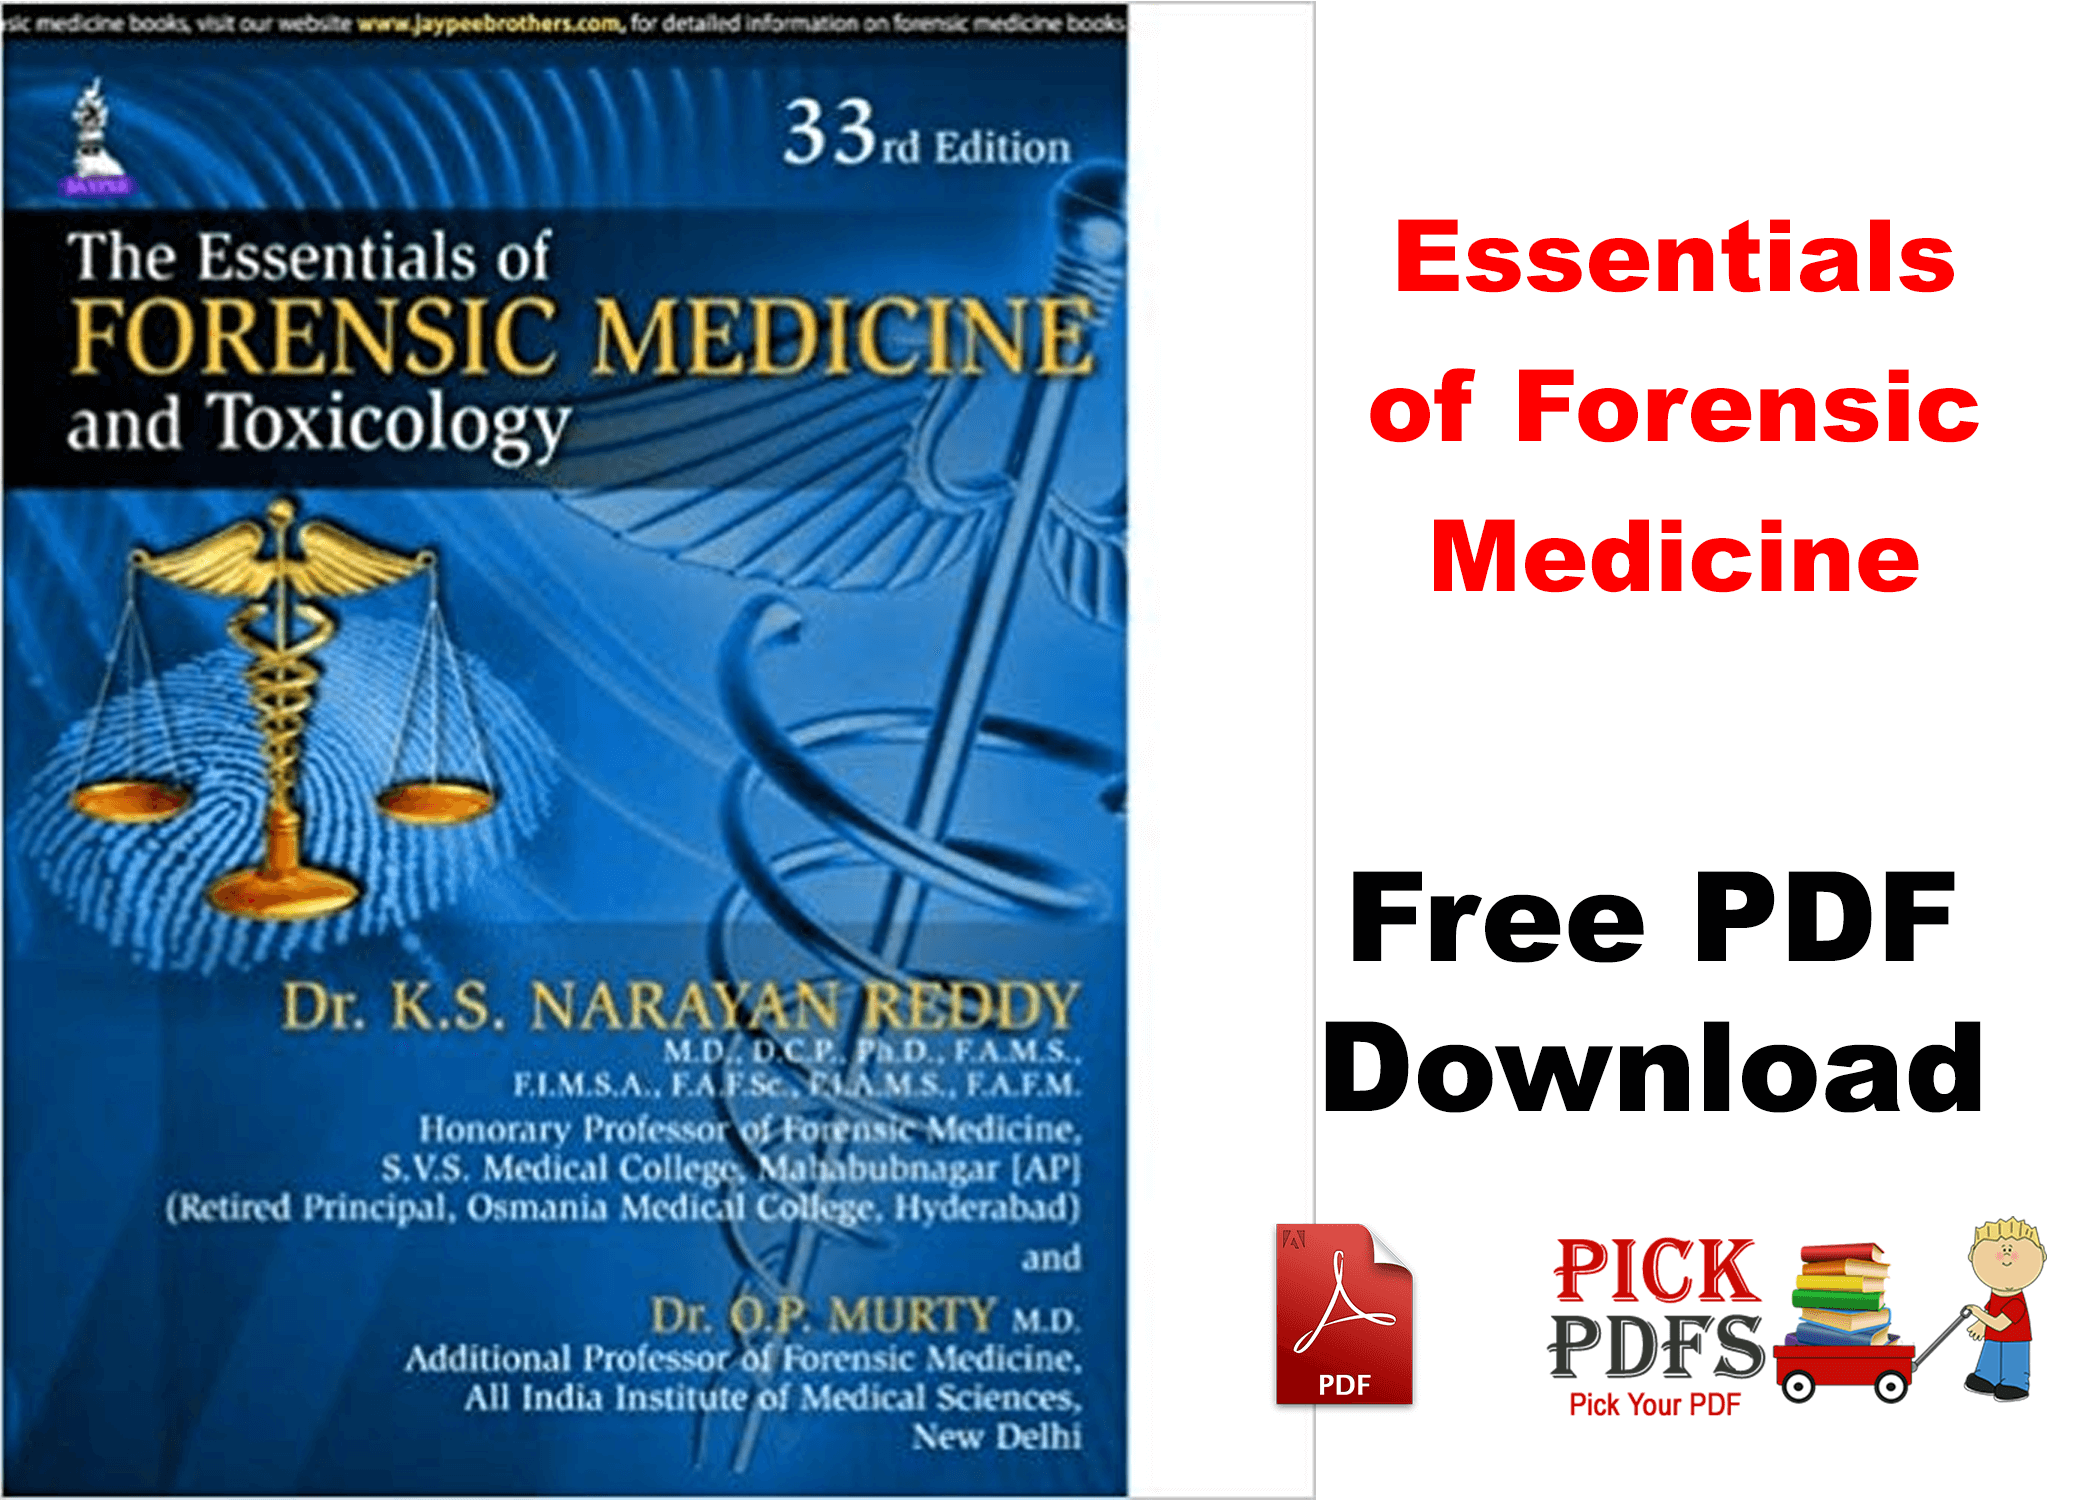 Essentials Of Forensic Medicine By Narayan Reddy Free Pdf Book Download Pickpdf